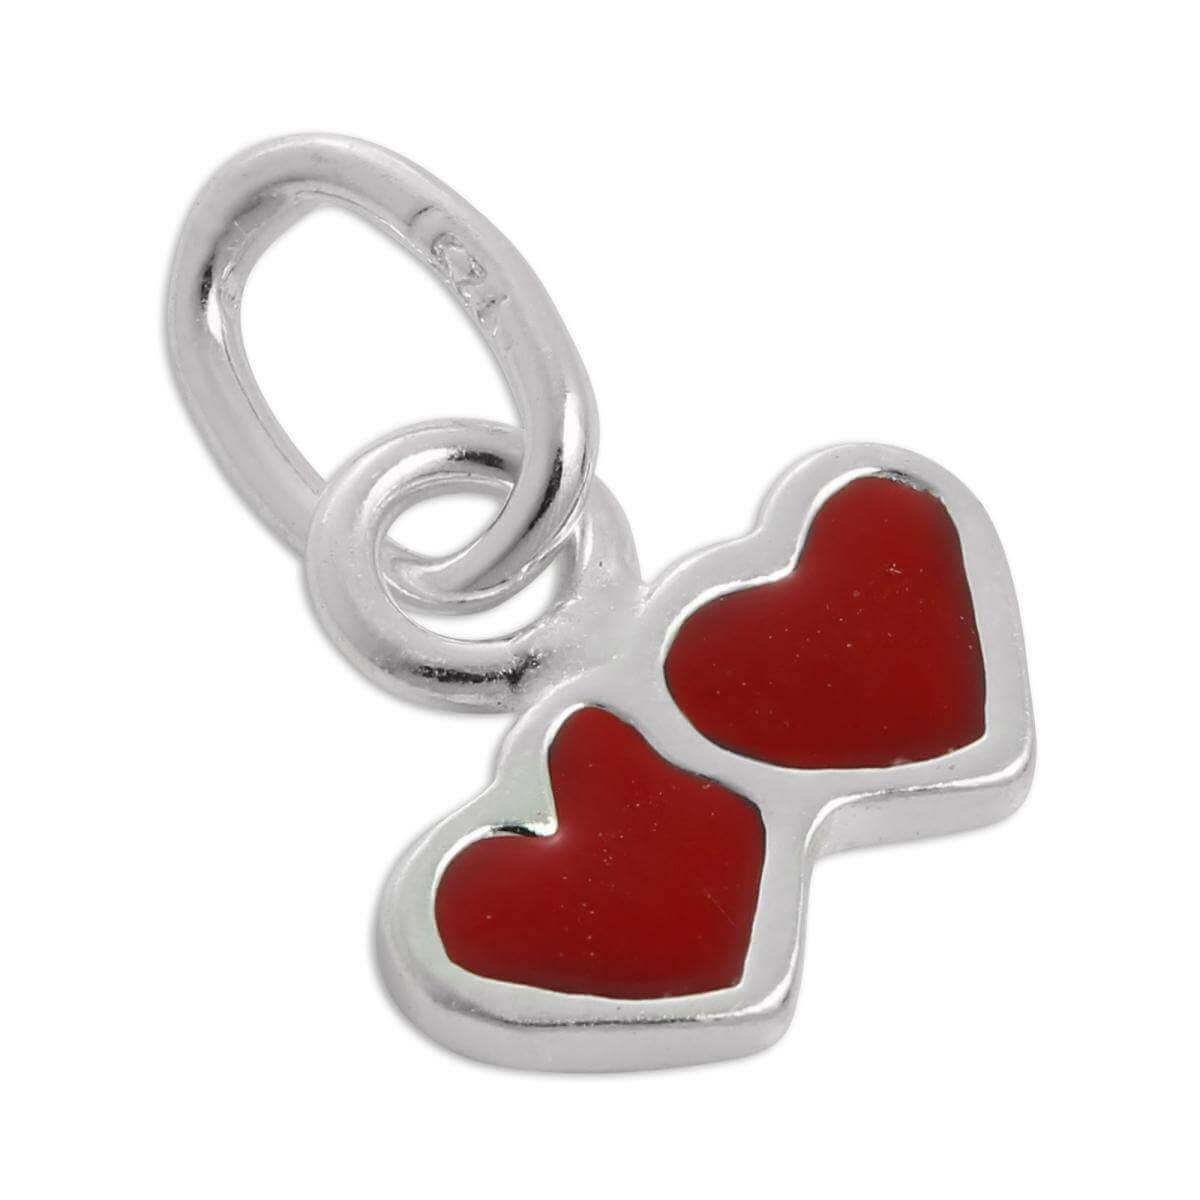 Tiny Sterling Silver & Red Enamel Double Heart Charm